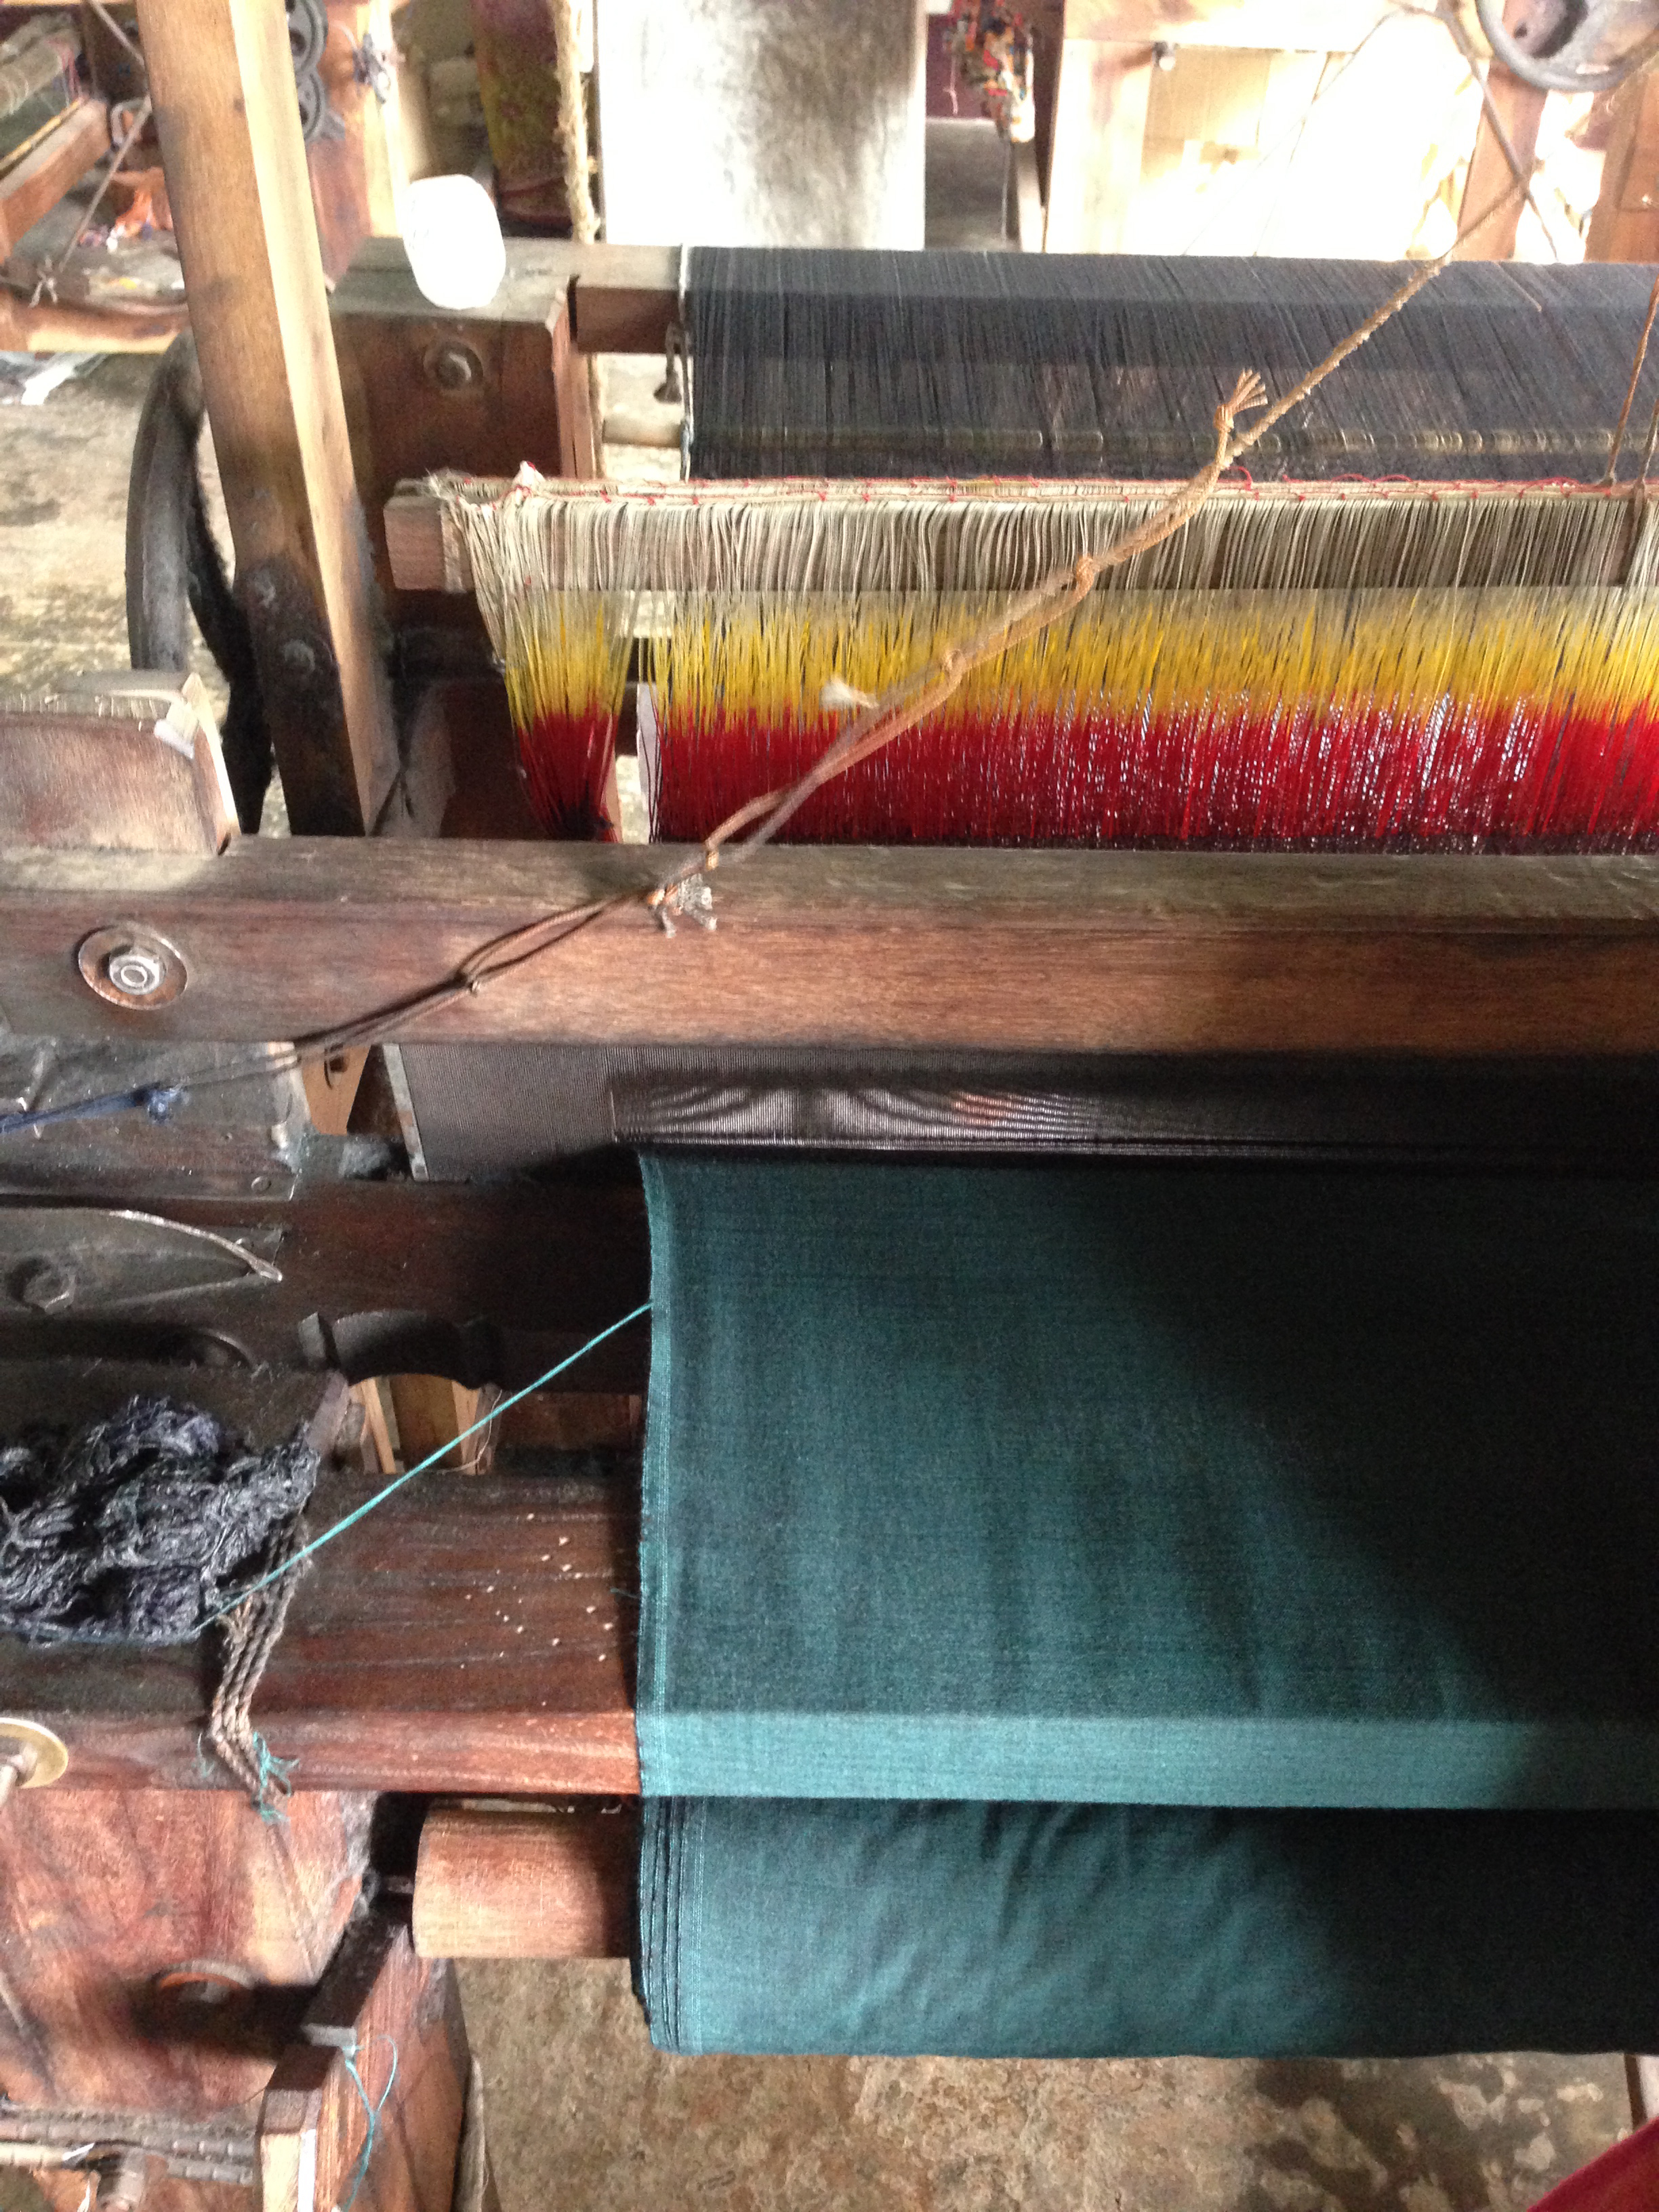 The hand loom in action